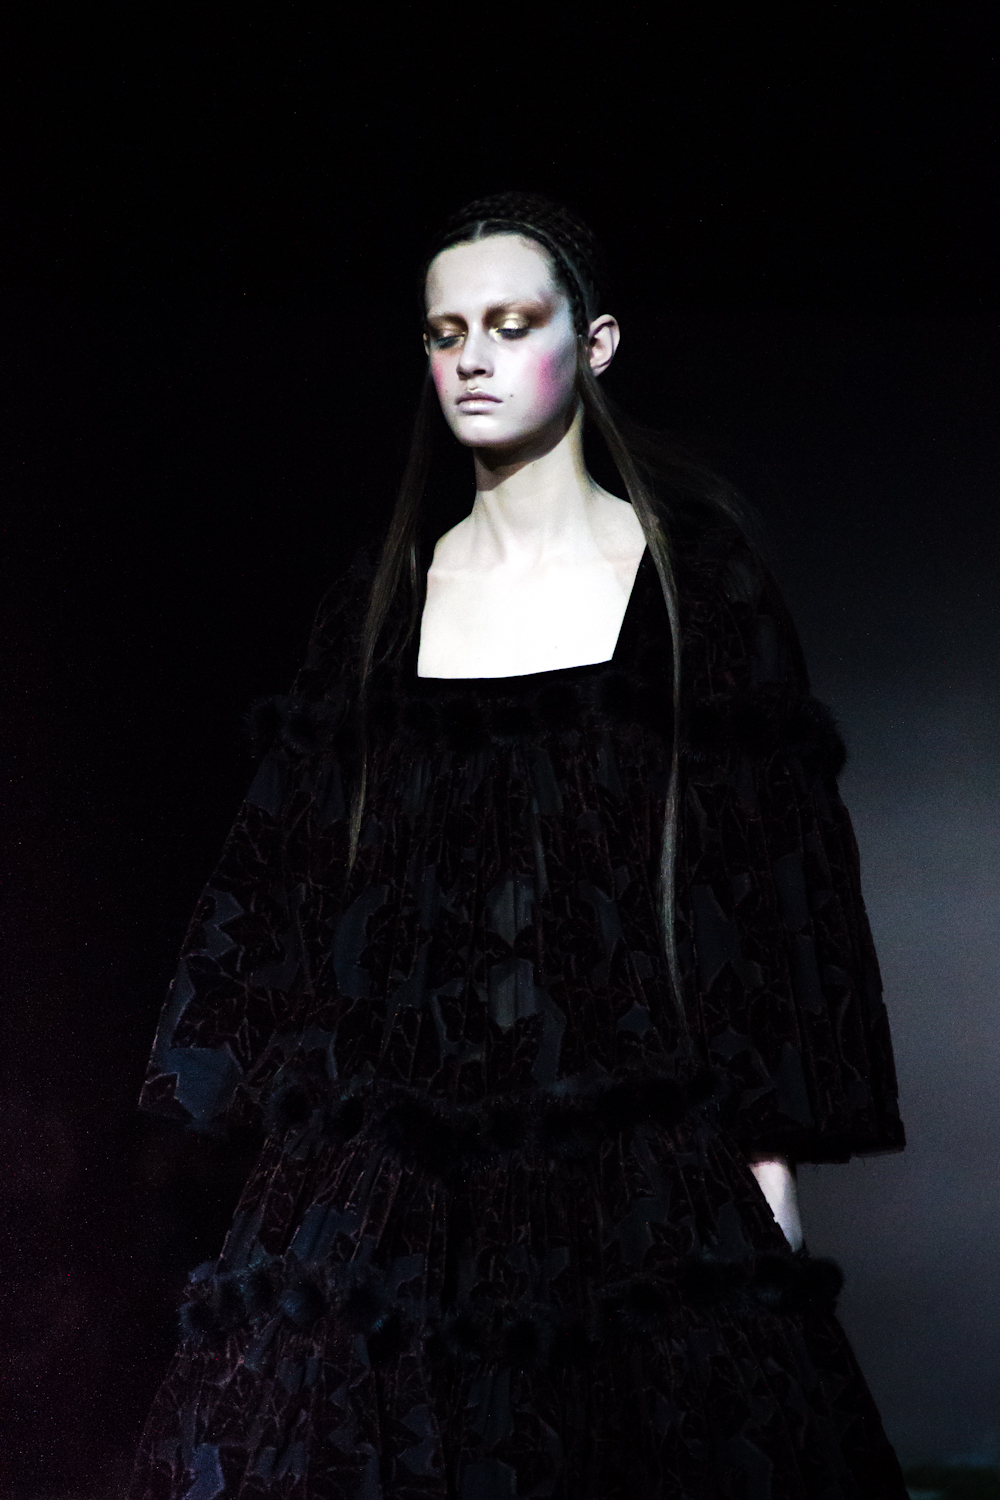 alexander mcqueen fall/winter 2014 by dario ruggiero | S/TUDIO